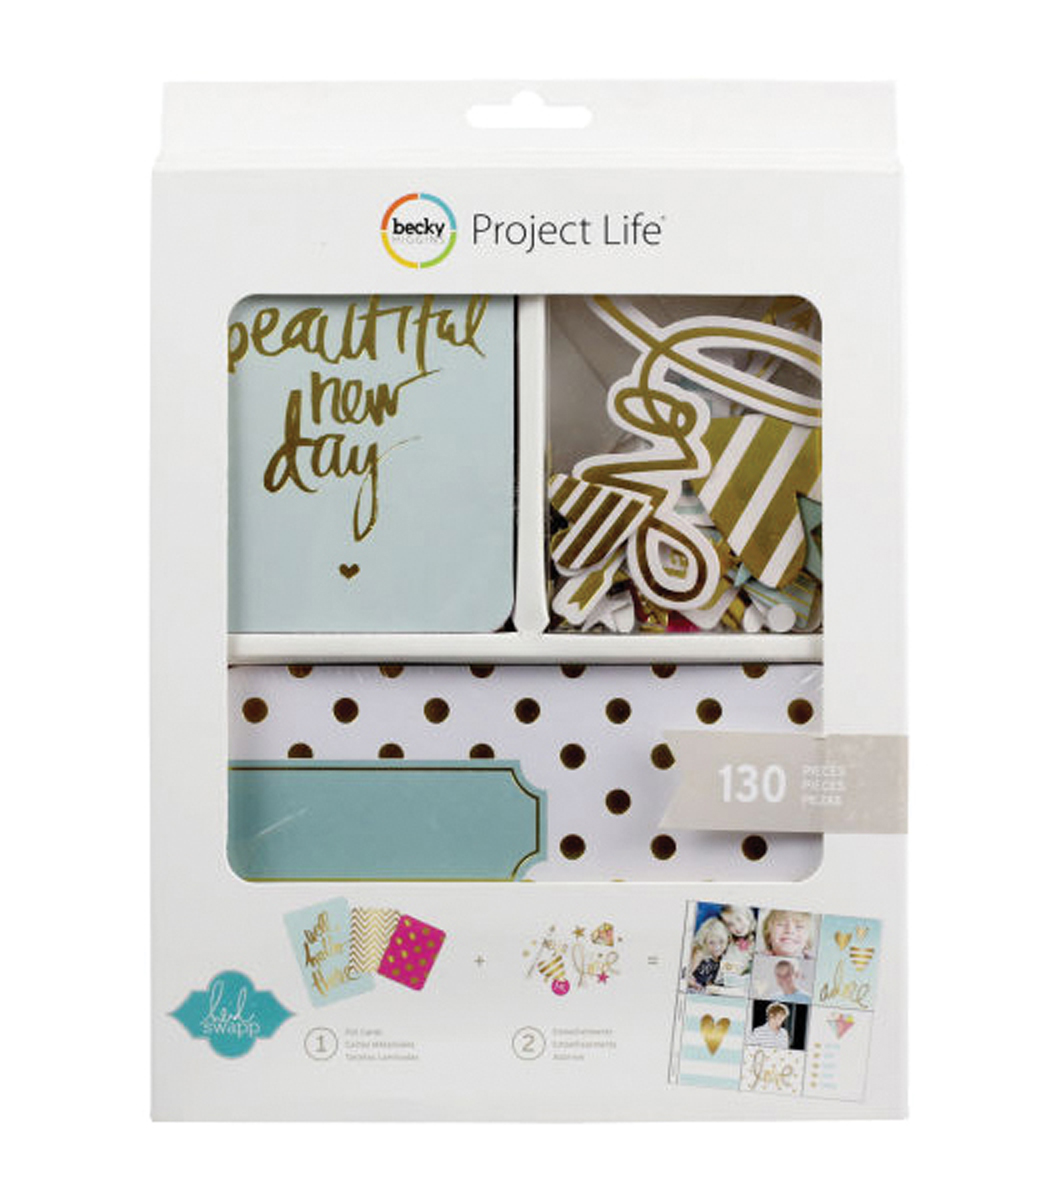 Project Life Mini Kit-Heidi Swapp -Gold Foil